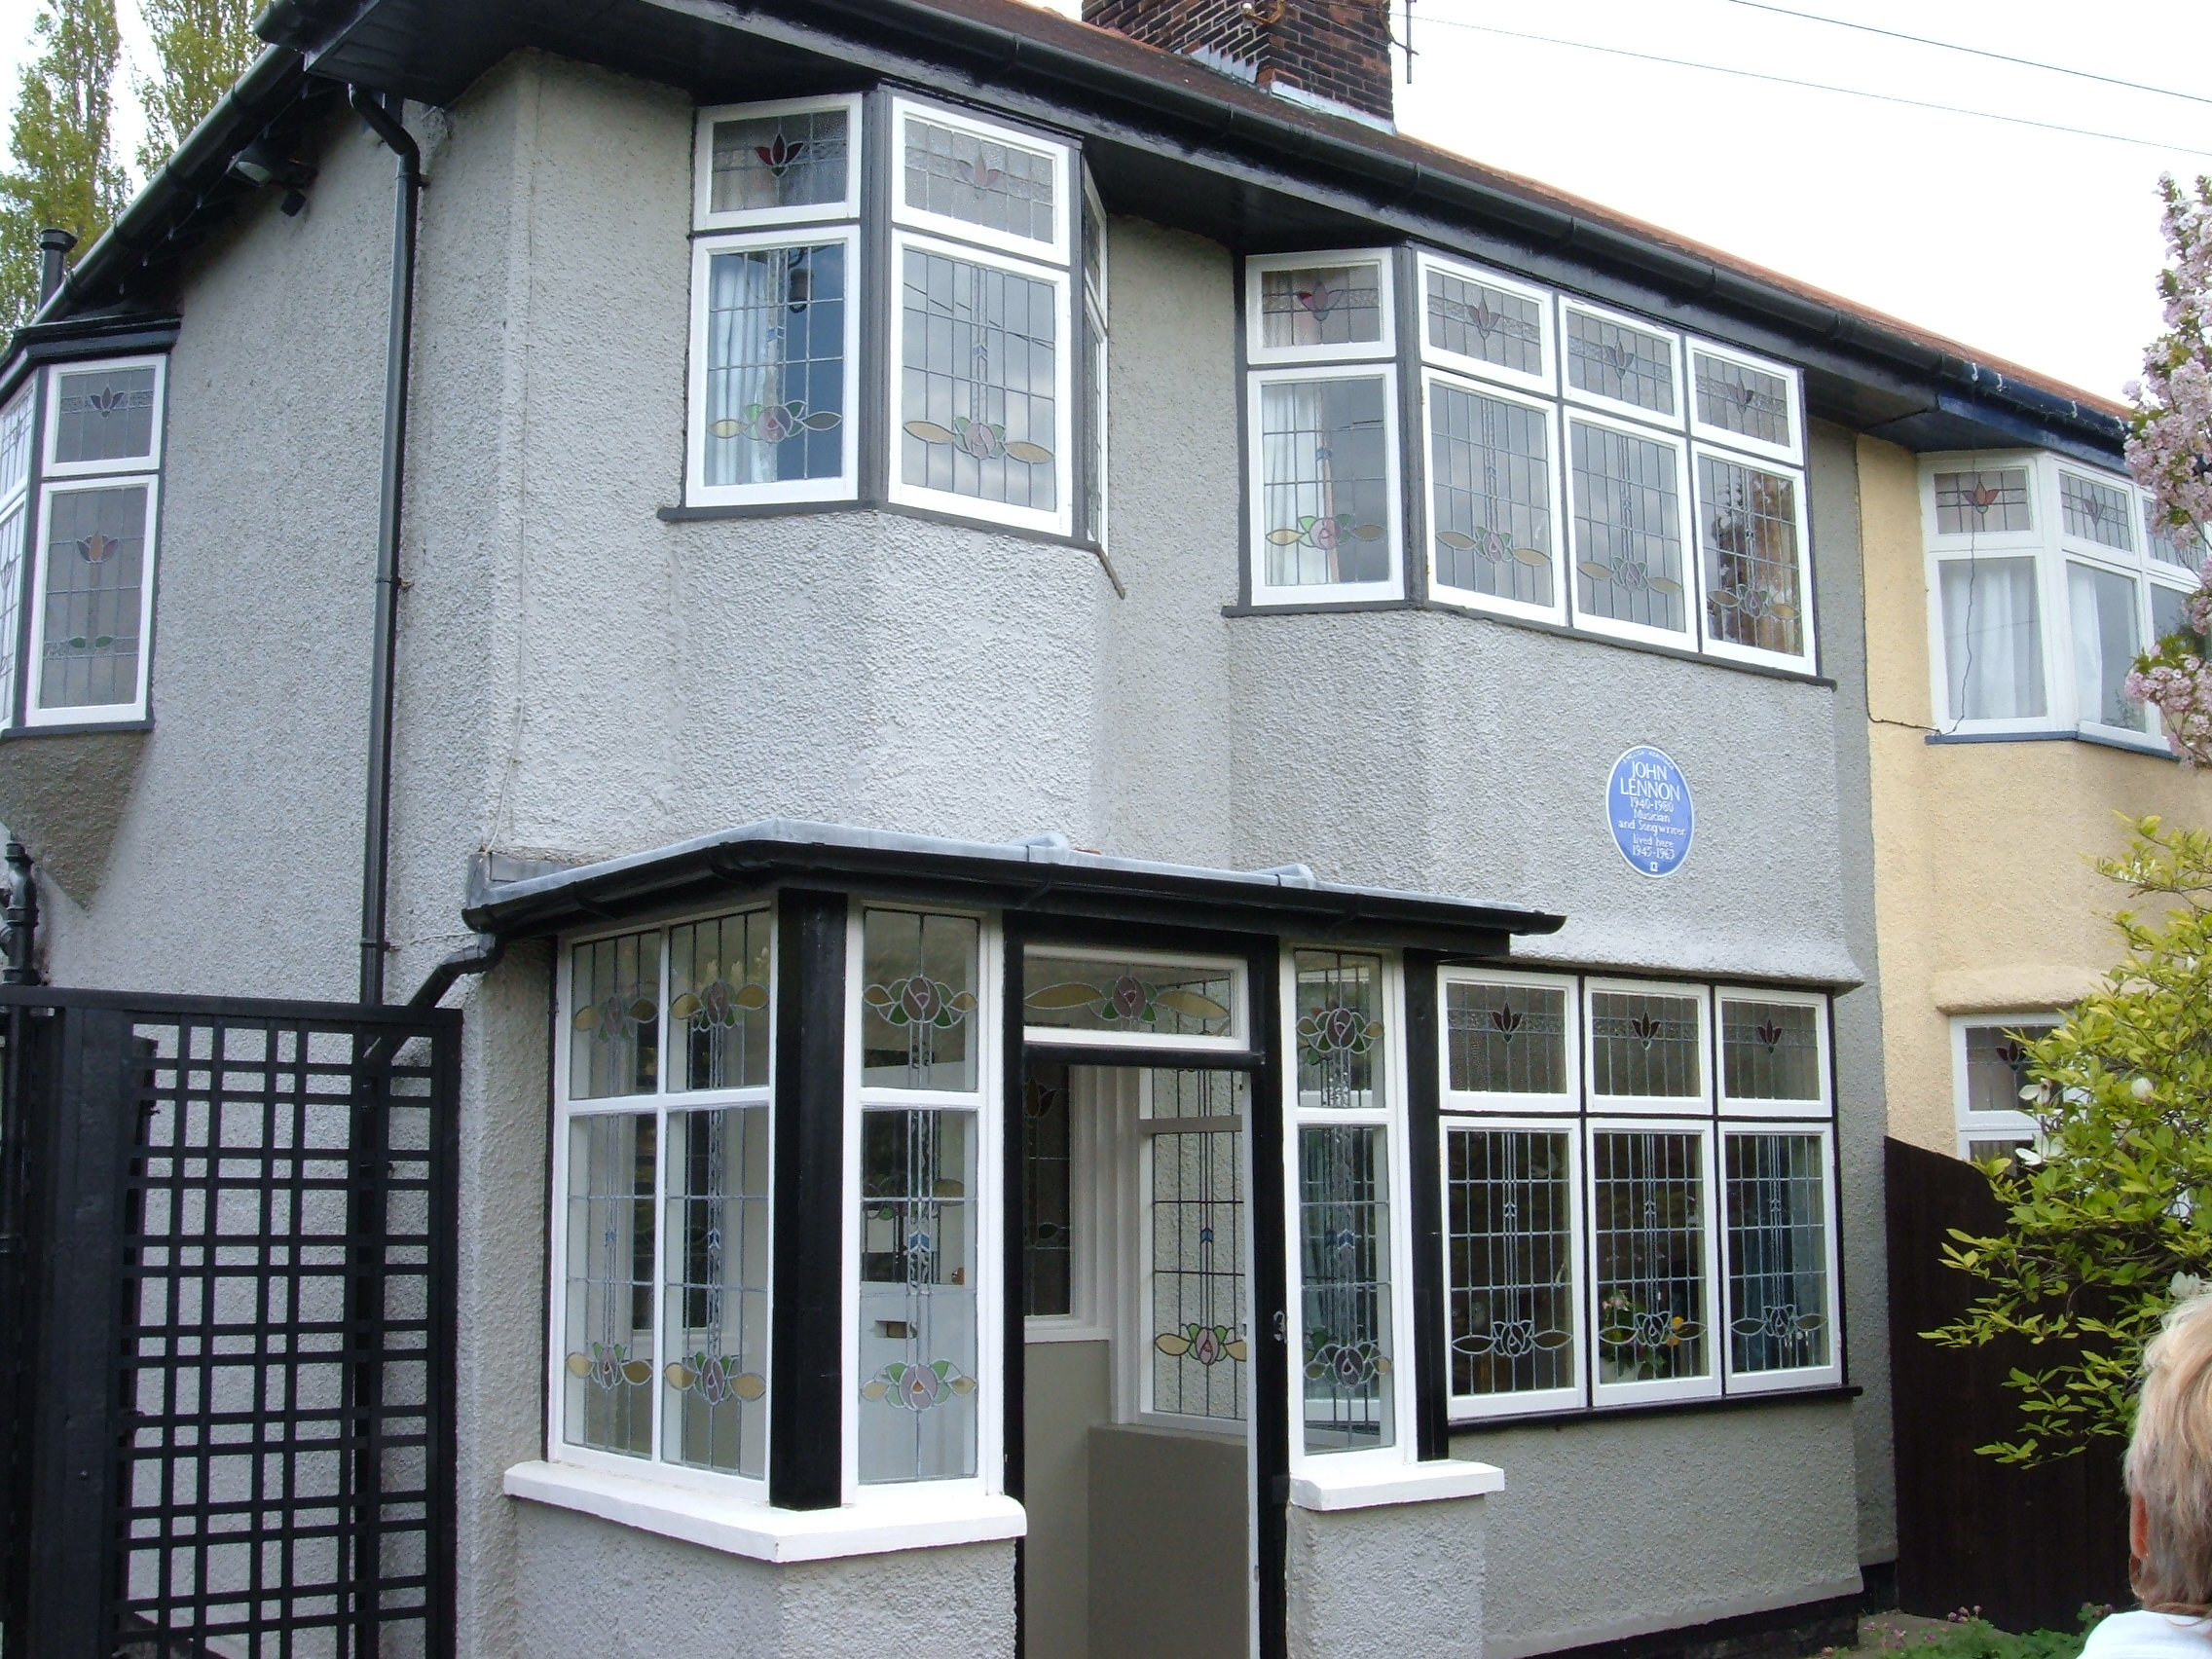 251 Menlove Avenue in Liverpool, England, named Mendips (after the Mendip Hills), is the childhood home of John Lennon, singer and songwriter with The Beatles. The Grade II listed building is preserved by the National Trust. Photo taken on May 23, 2006.